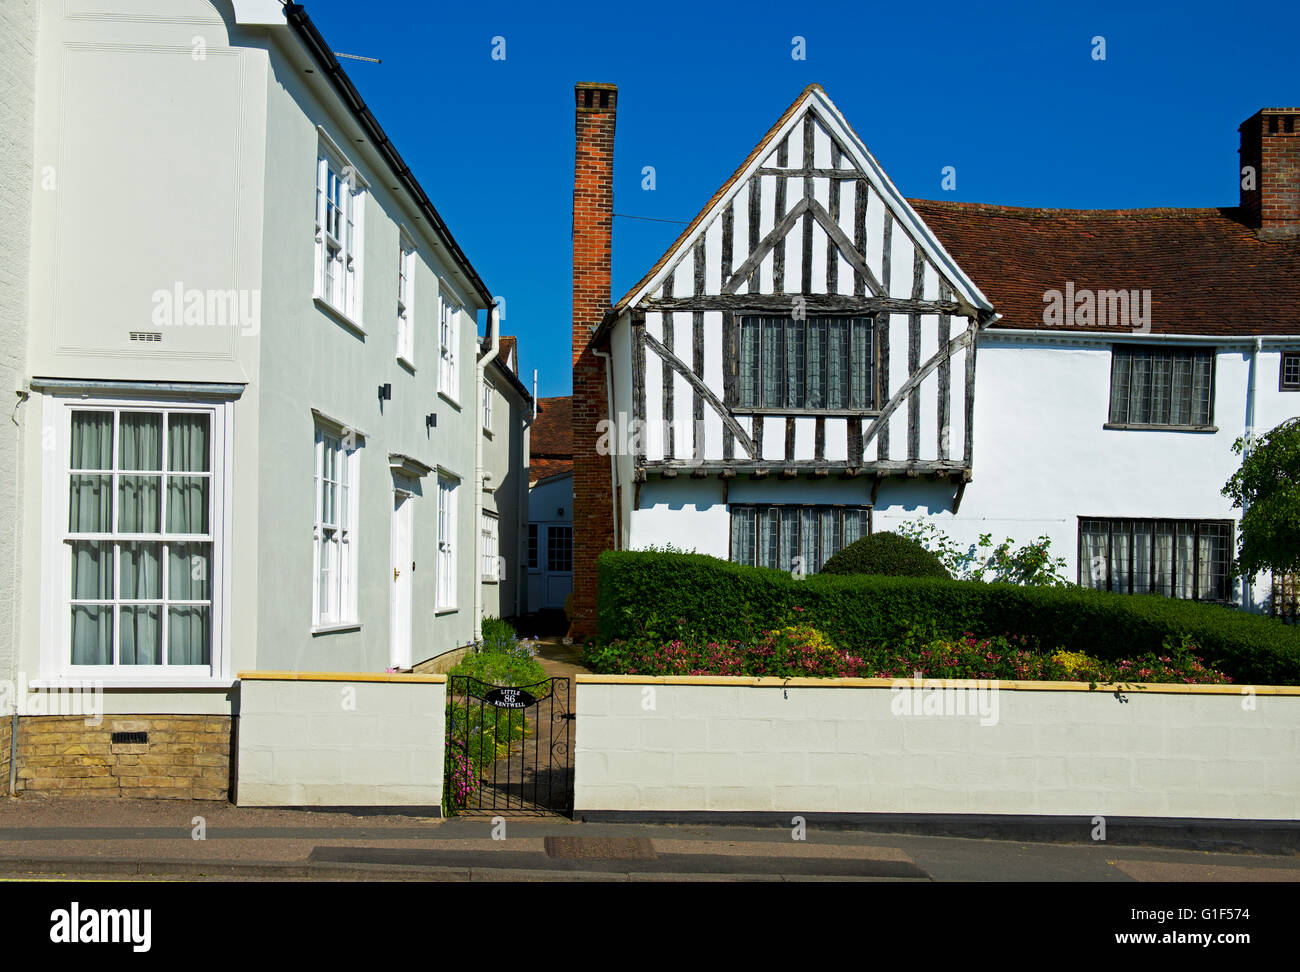 Half-timbered house in the village of Lavenham, Suffolk, England UK - Stock Image